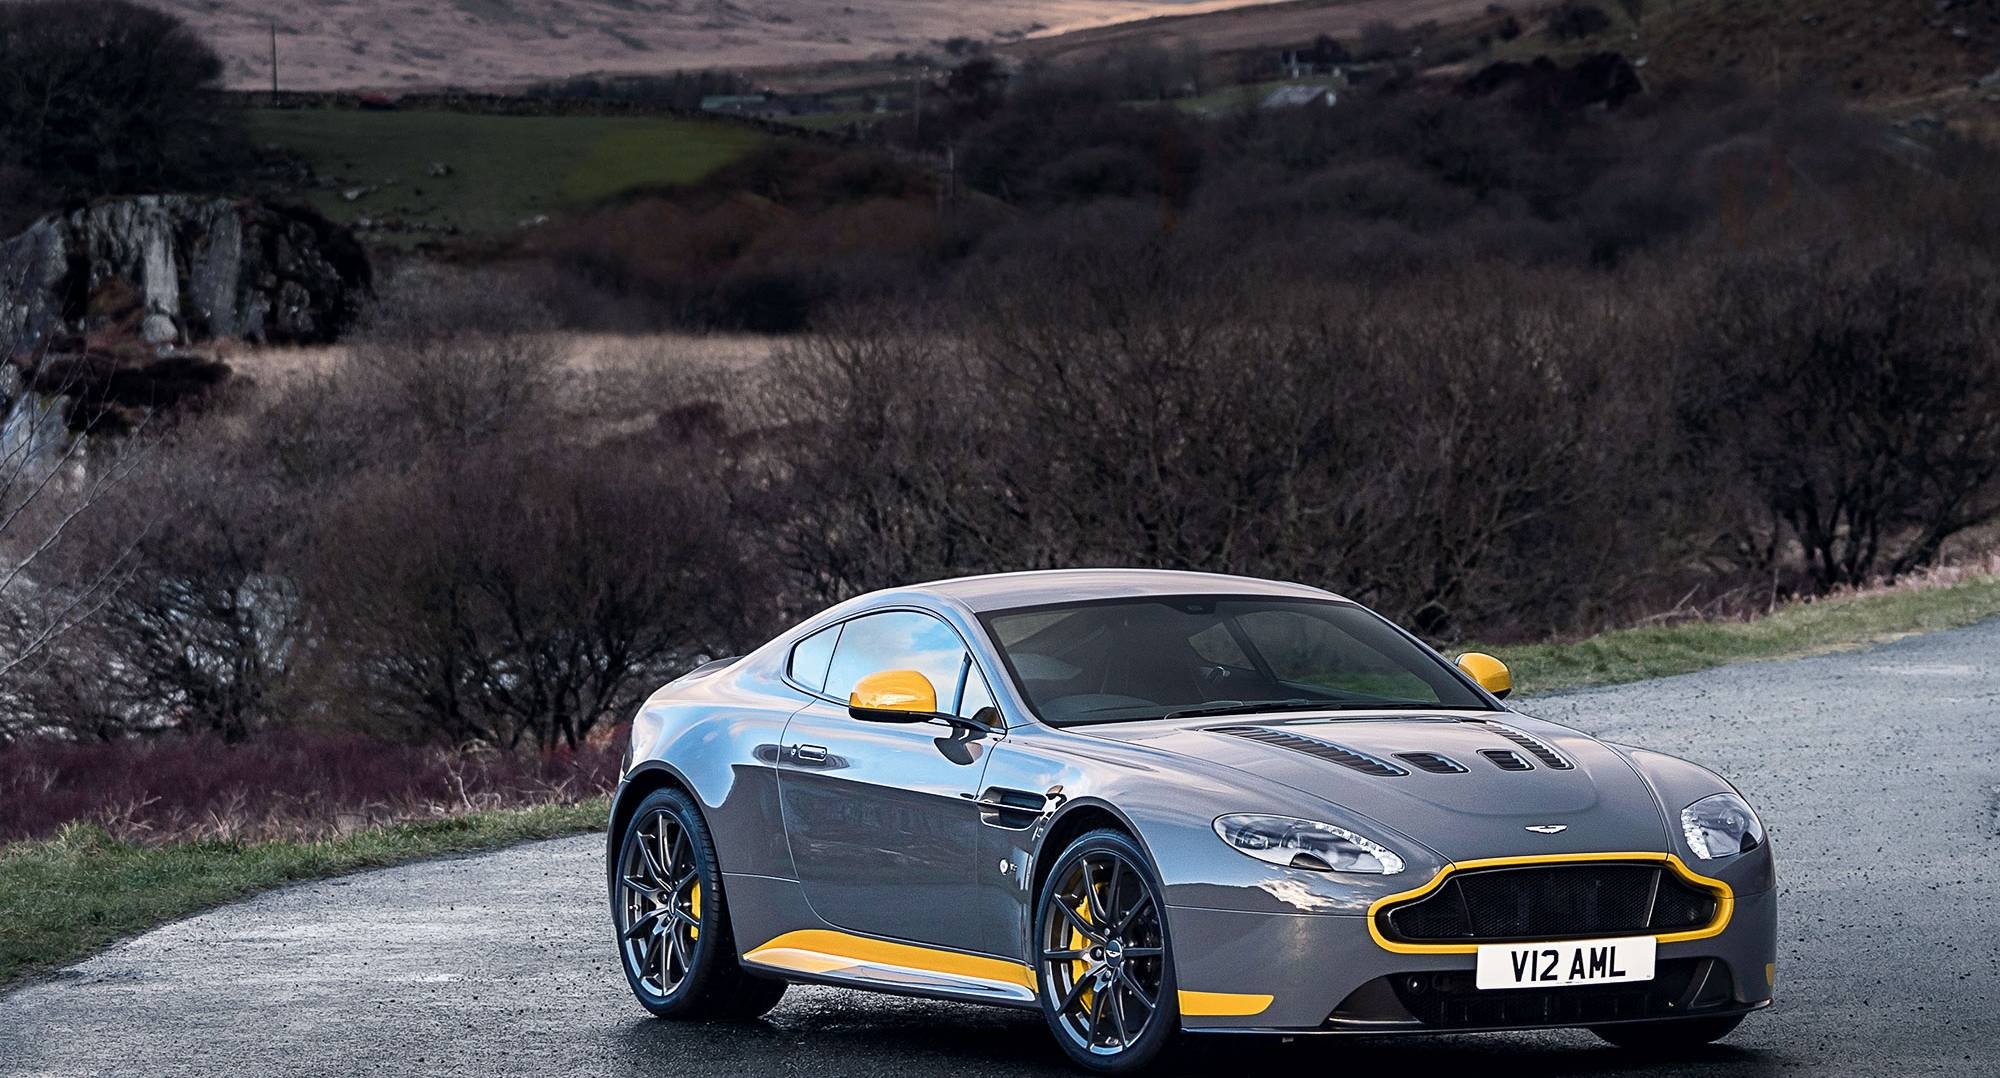 The Aston Martin V12 Manual parked on a road in the Warwickshire countryside